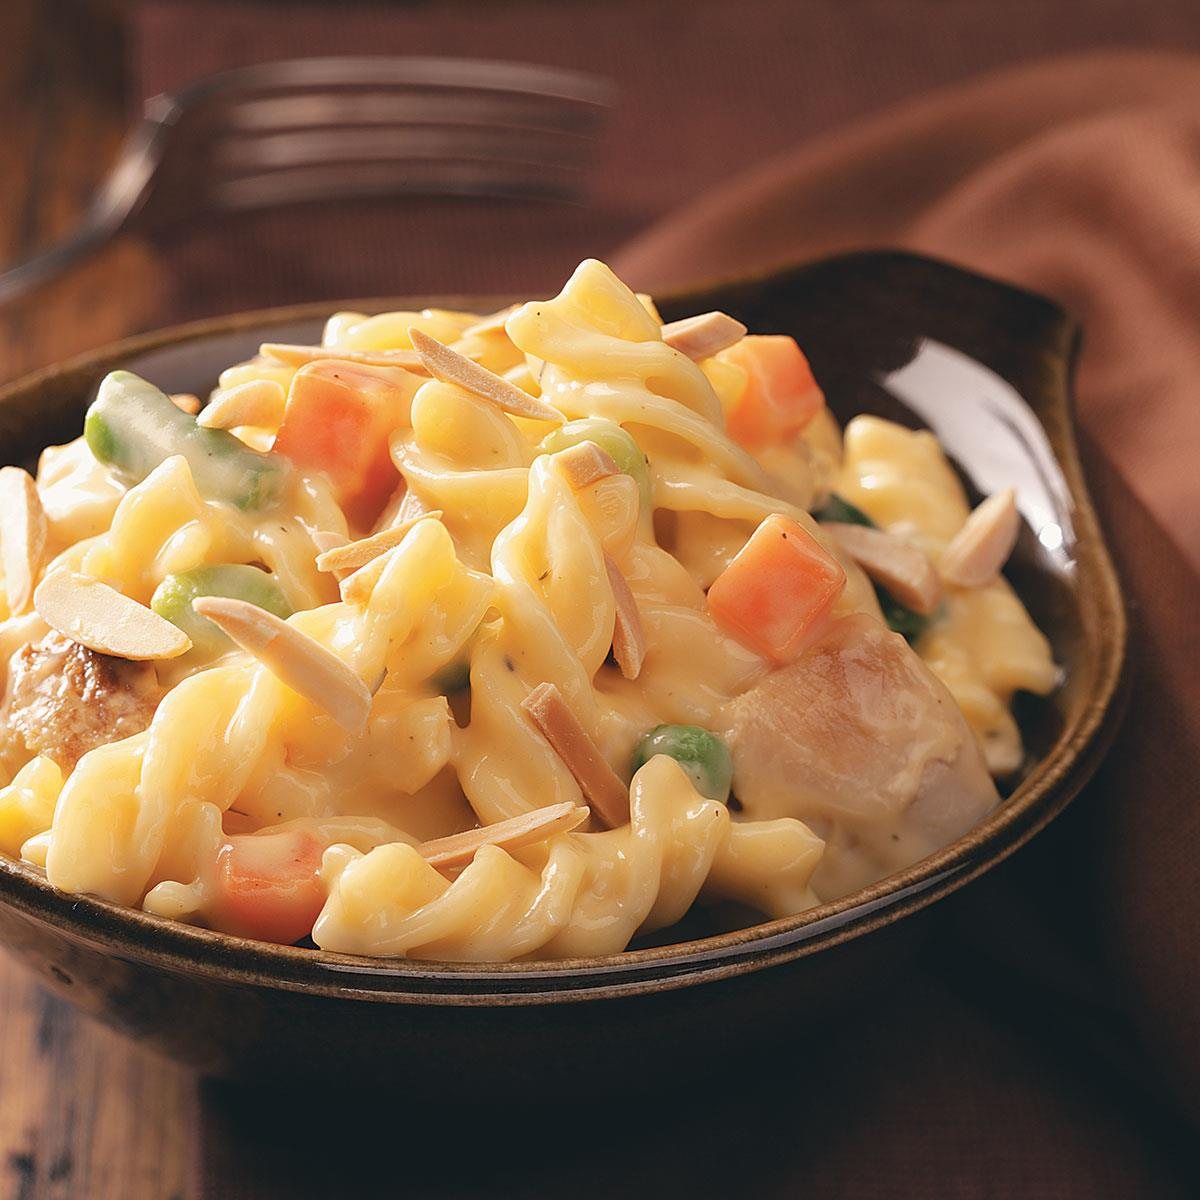 Cheddar Turkey Casserole Recipe How To Make It Taste Of Home